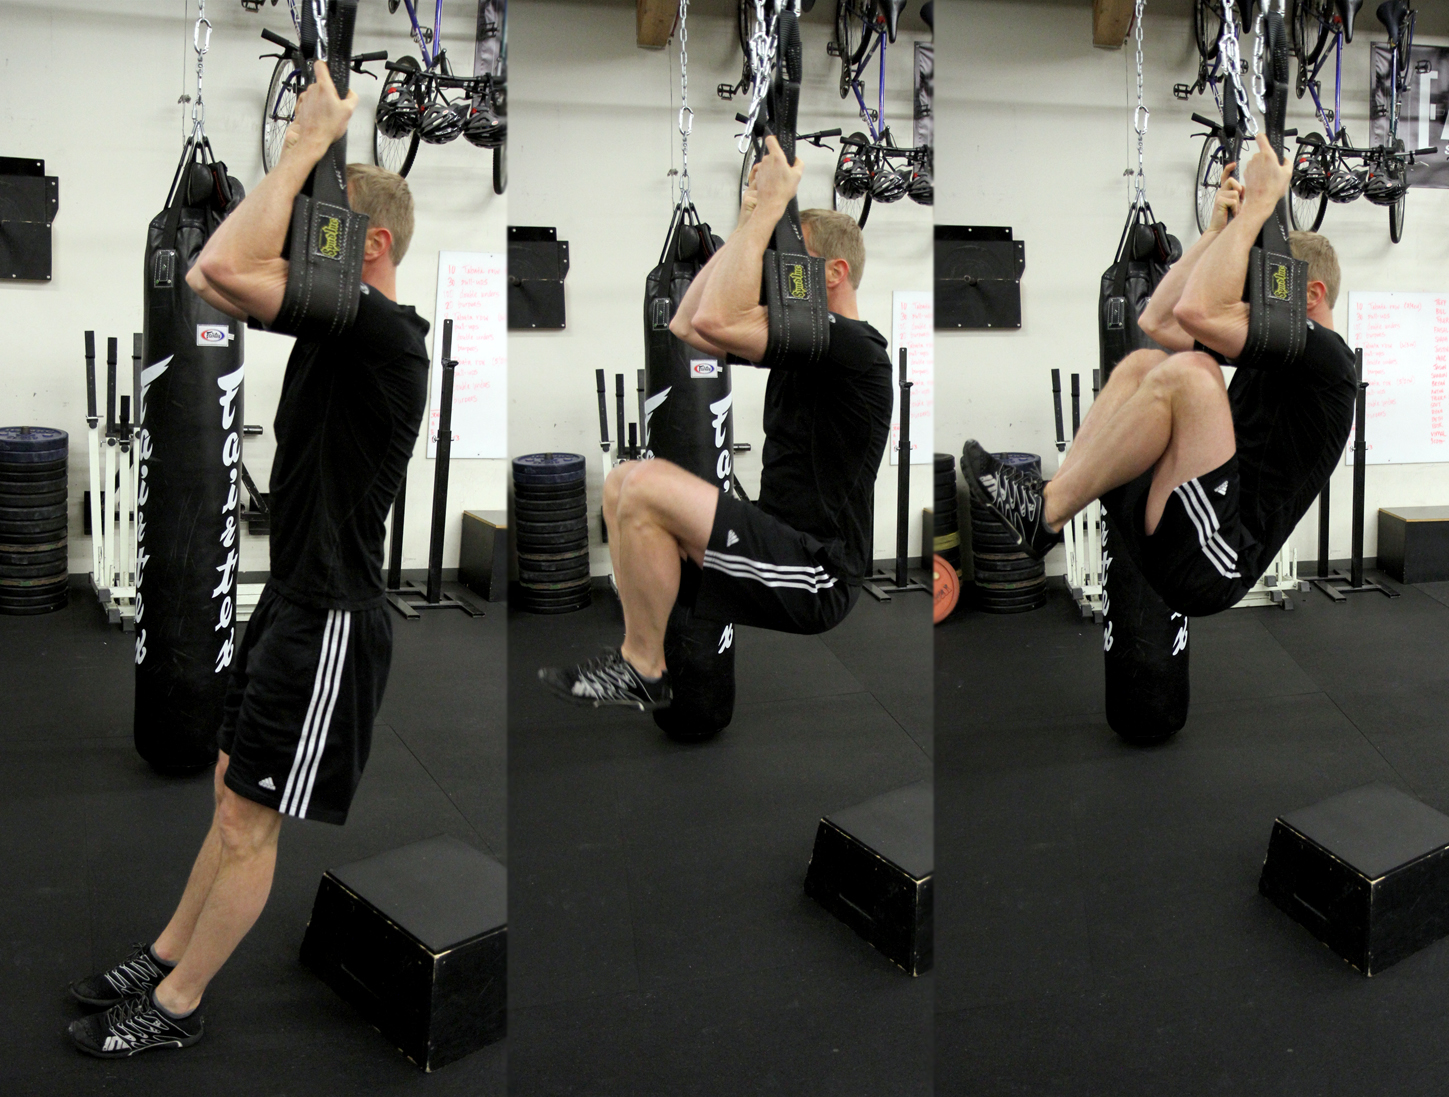 Hanging knee raises add good stress to abdominal training.